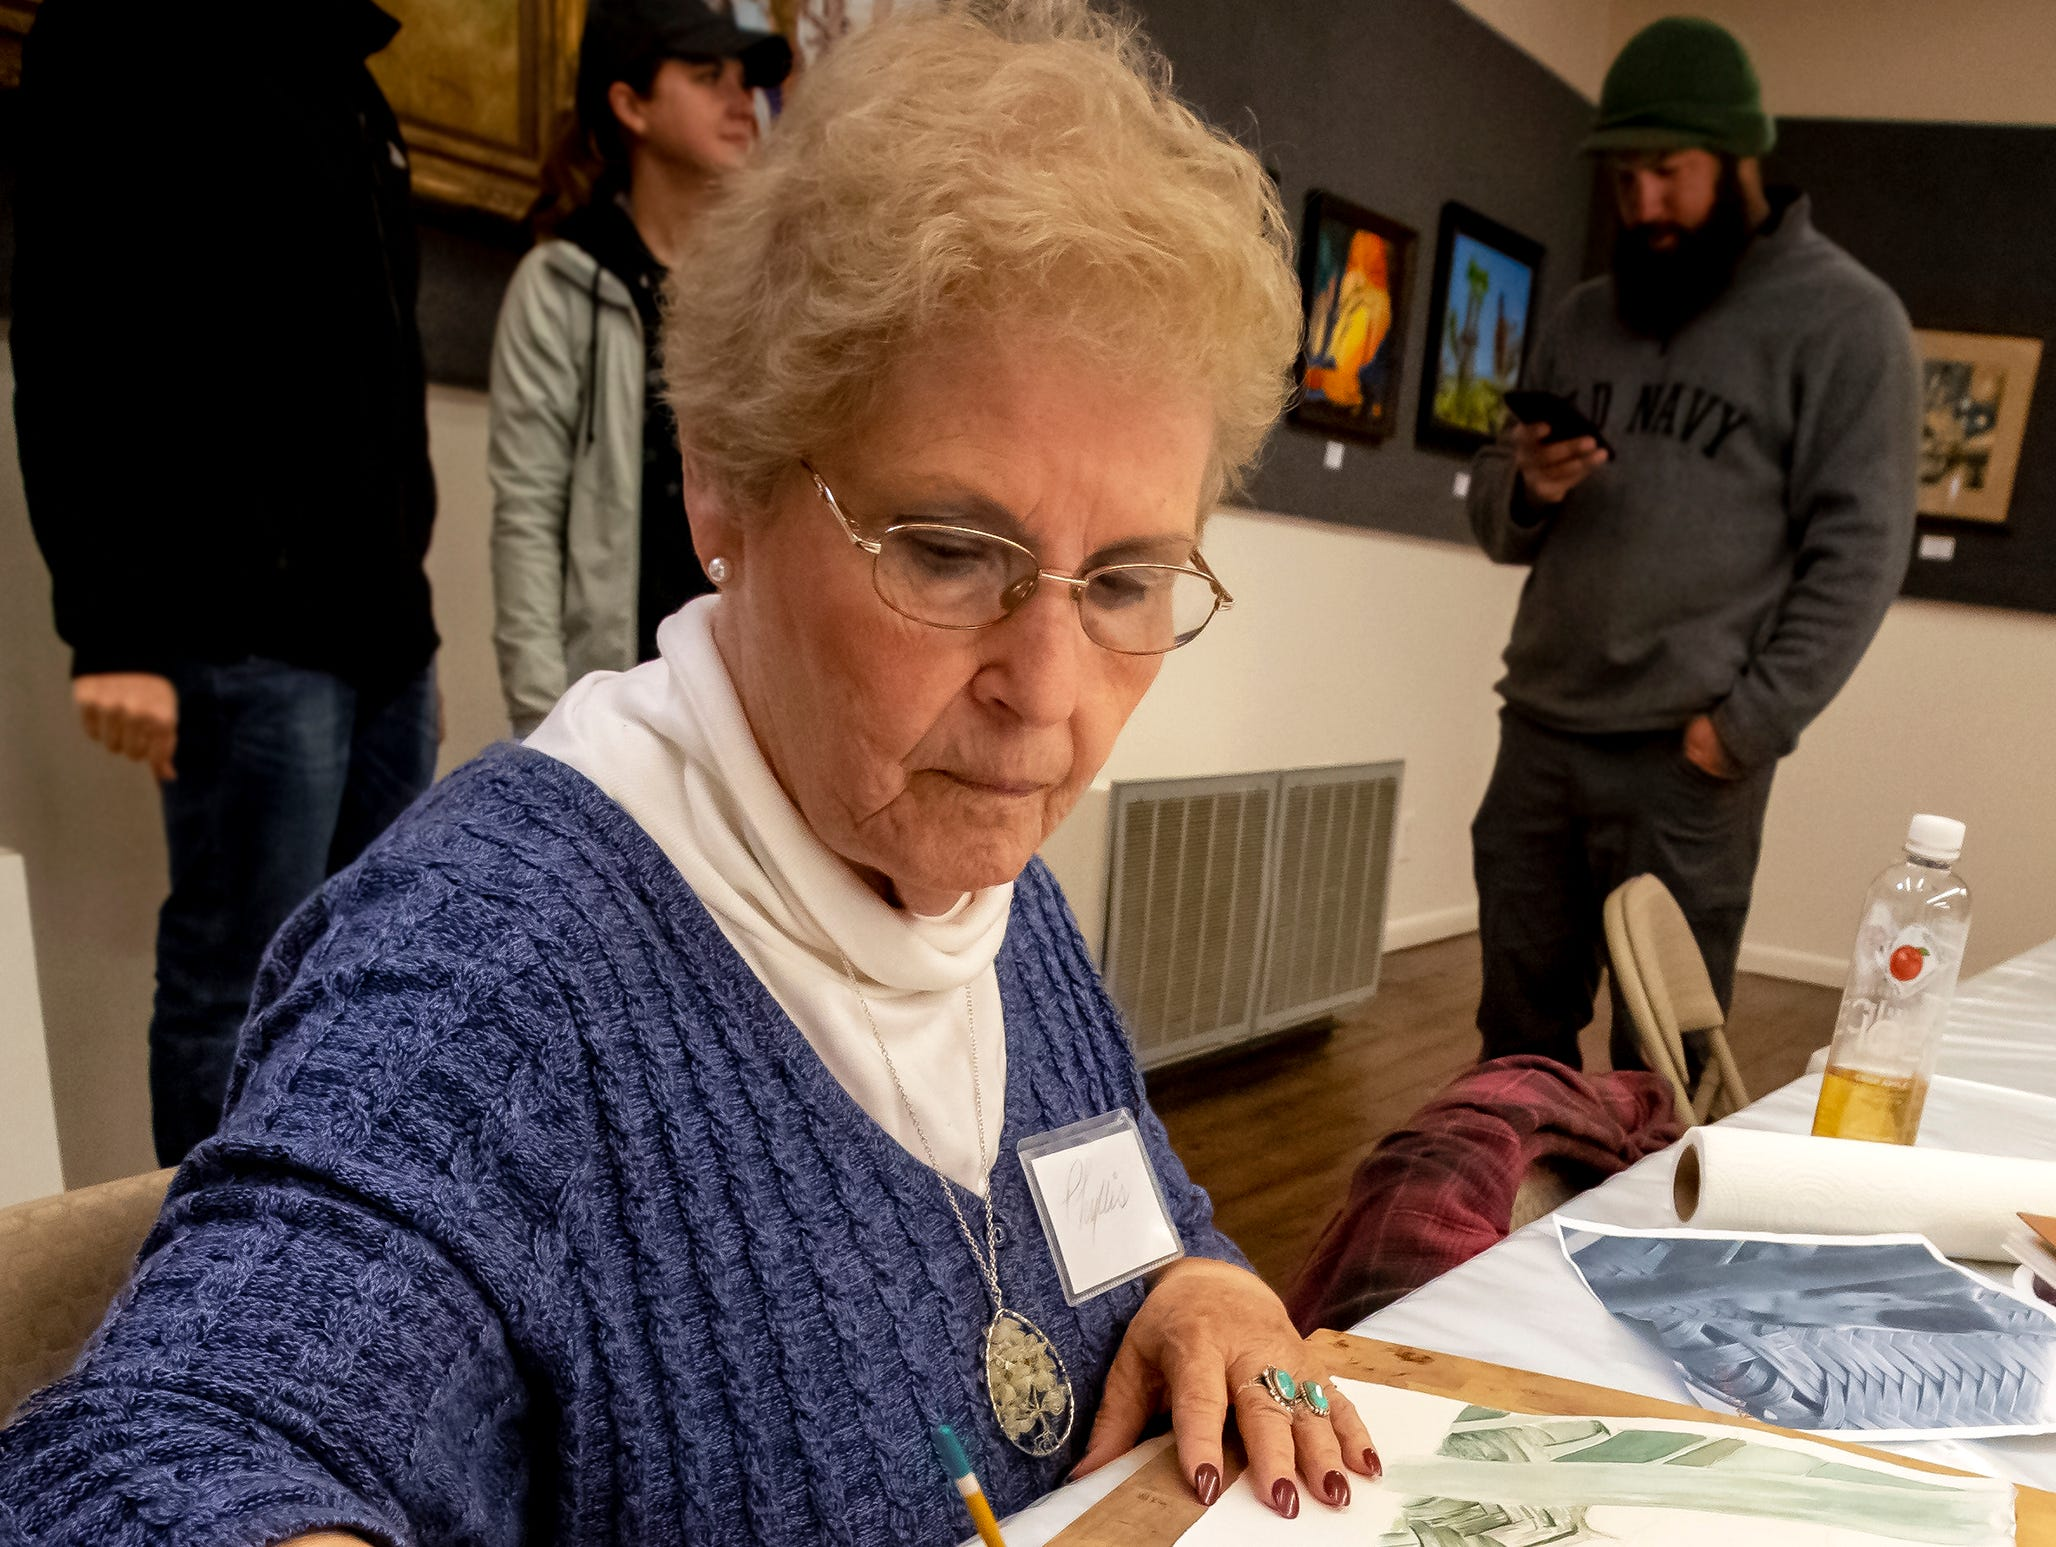 Phyllis Razo and her palette of watercolors as she works on her next creation at the 43rd annual Harvest Days celebration held at Cannonsburgh Villiage.